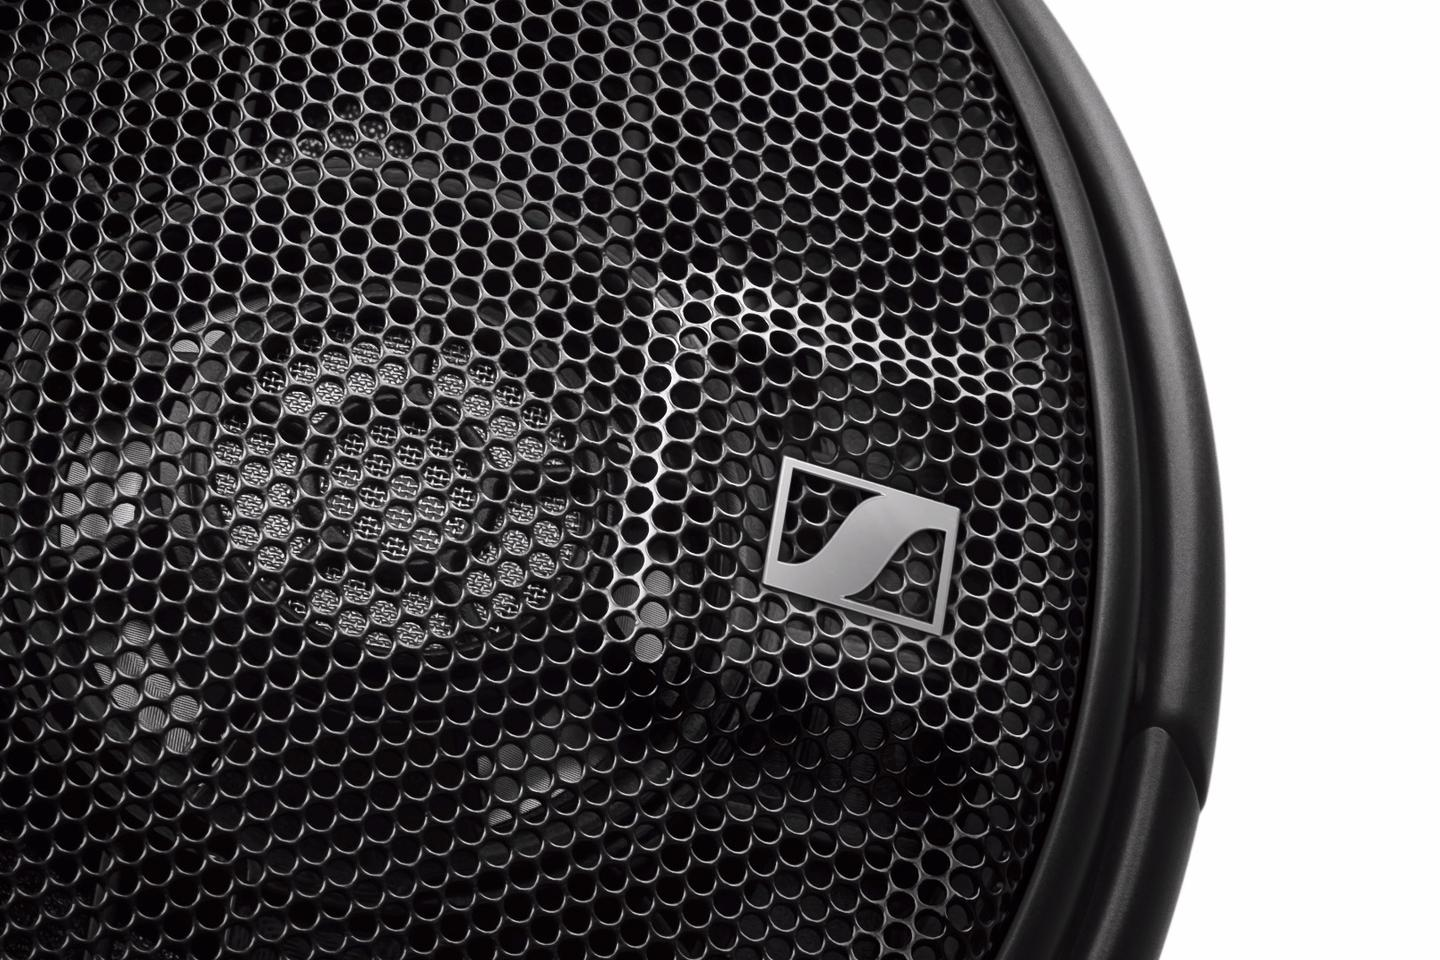 The new transducers in theHD 660 S open-back headphones are pairedby hand, and are said to ensure low harmonic distortion and an authentic life-like sound